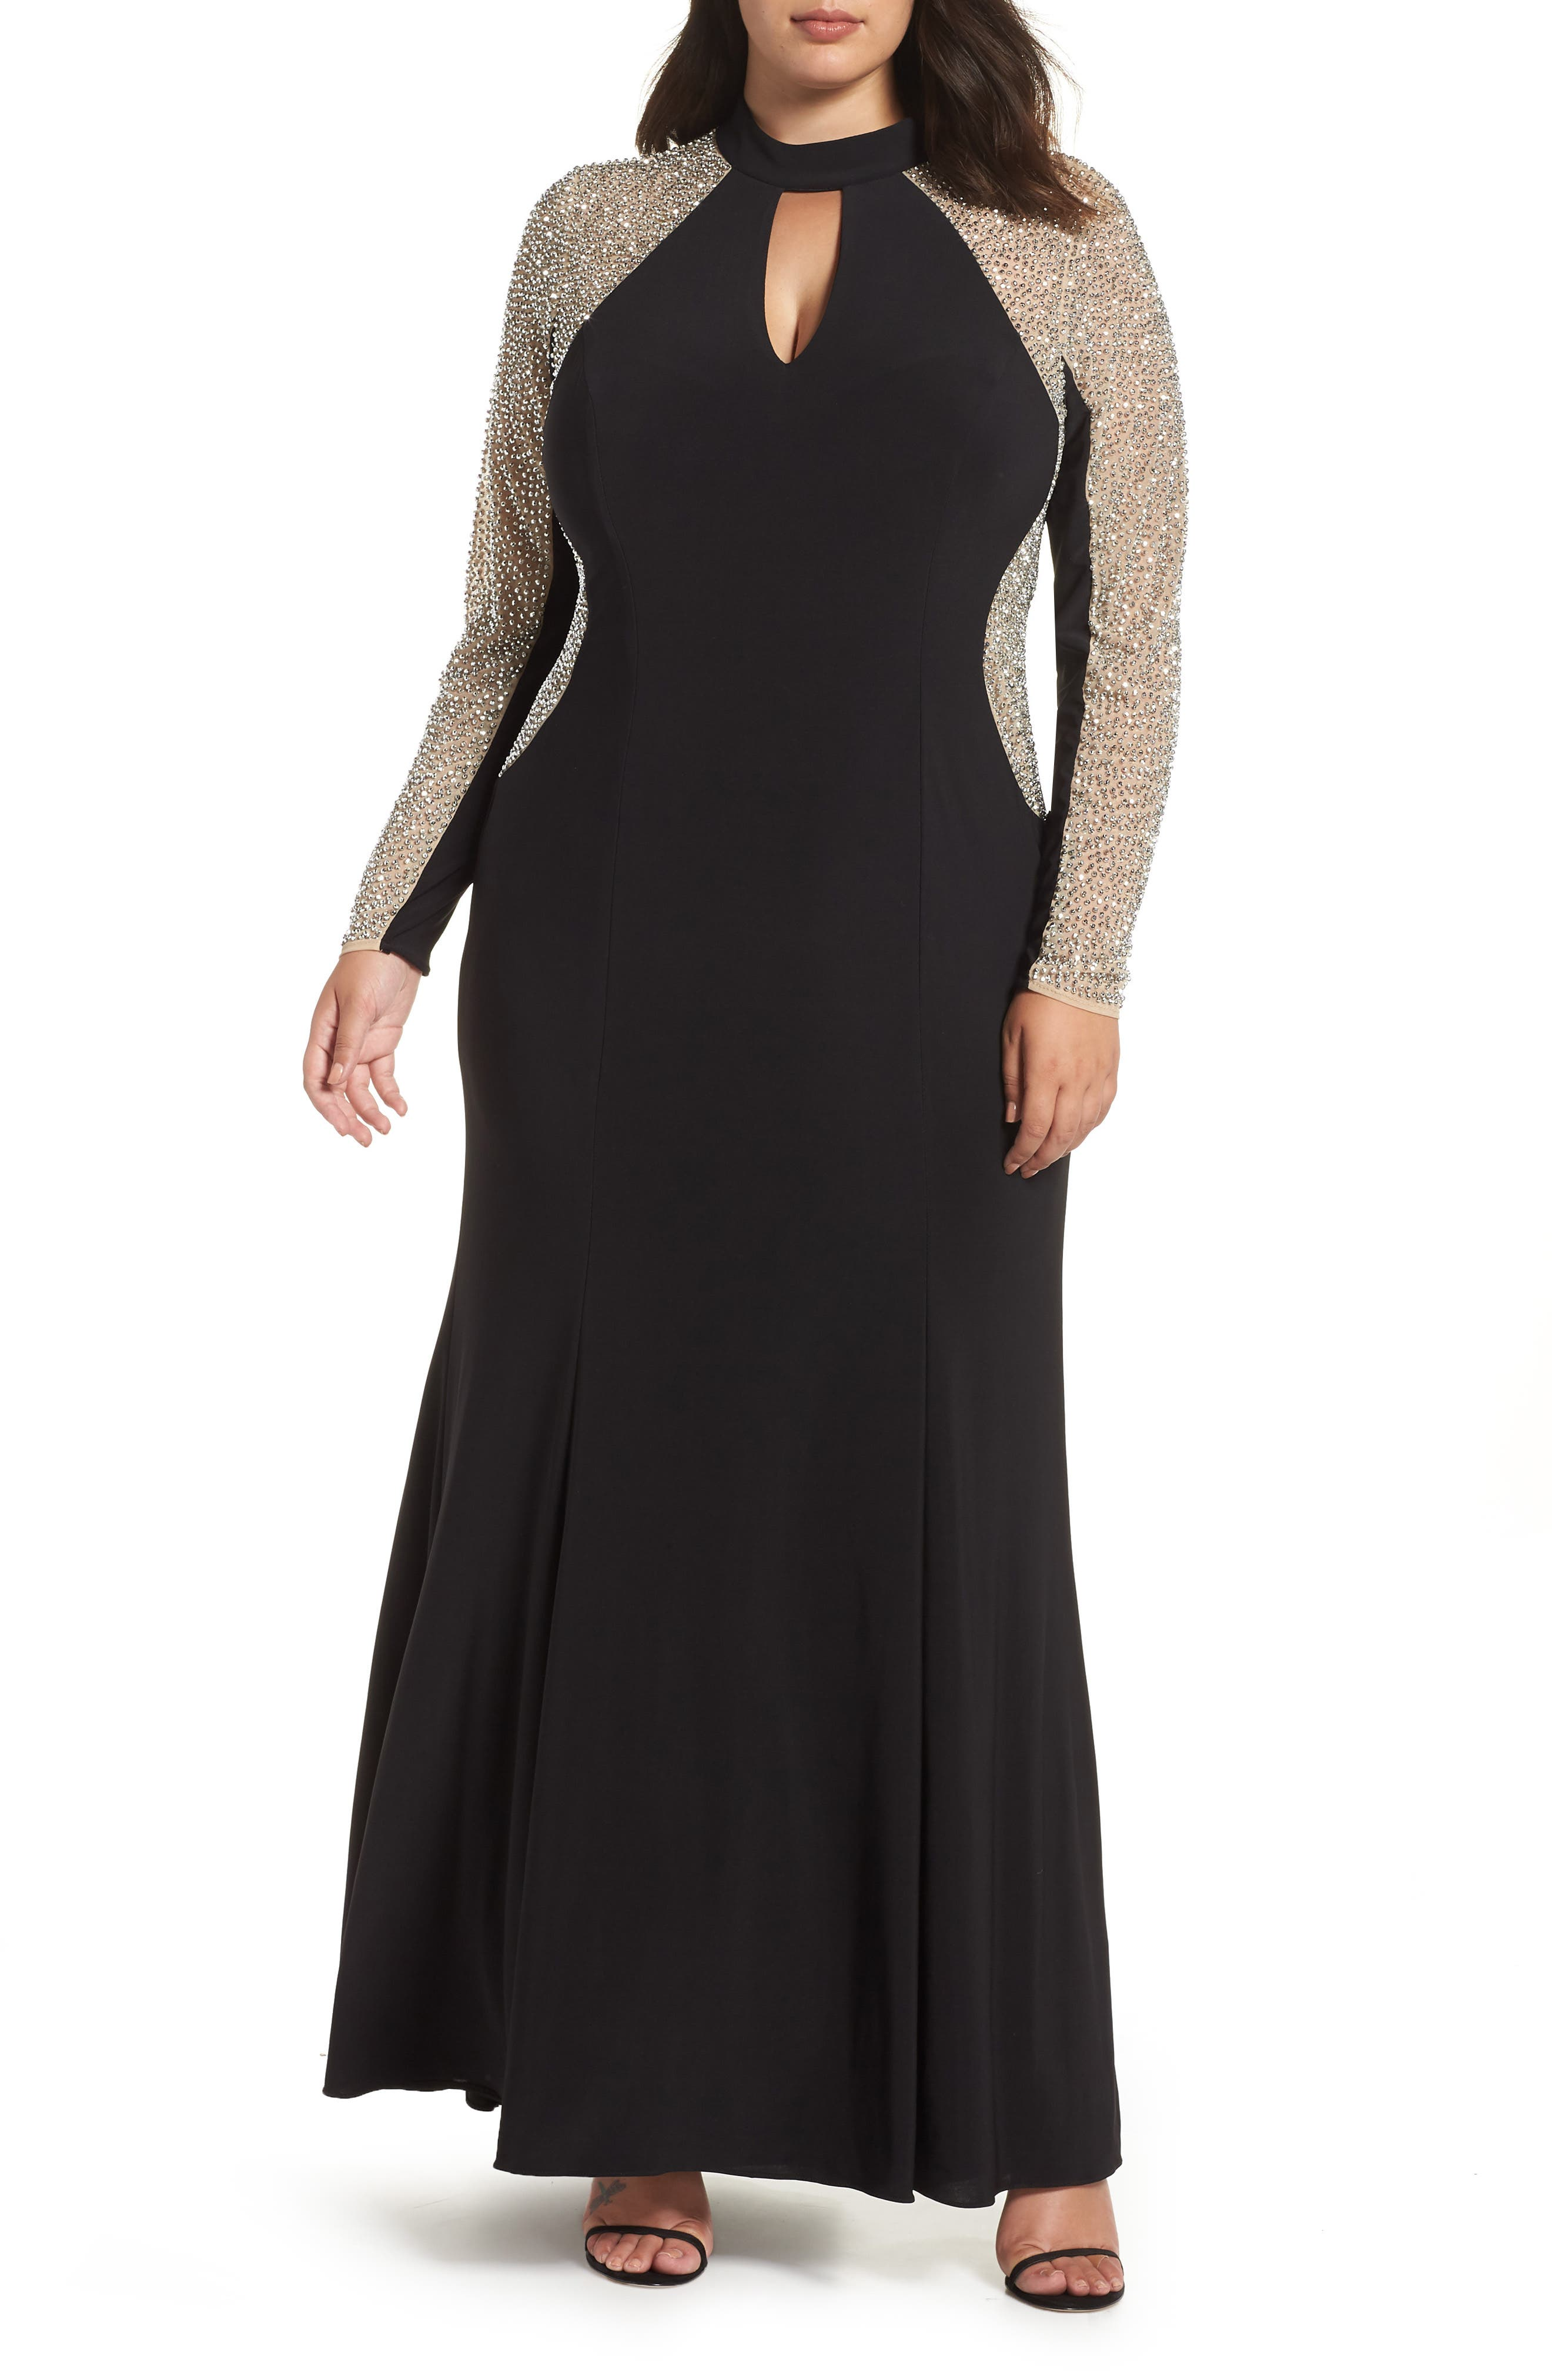 XSCAPE, Beaded A-Line Gown, Main thumbnail 1, color, BLACK/ NUDE/ SILVER